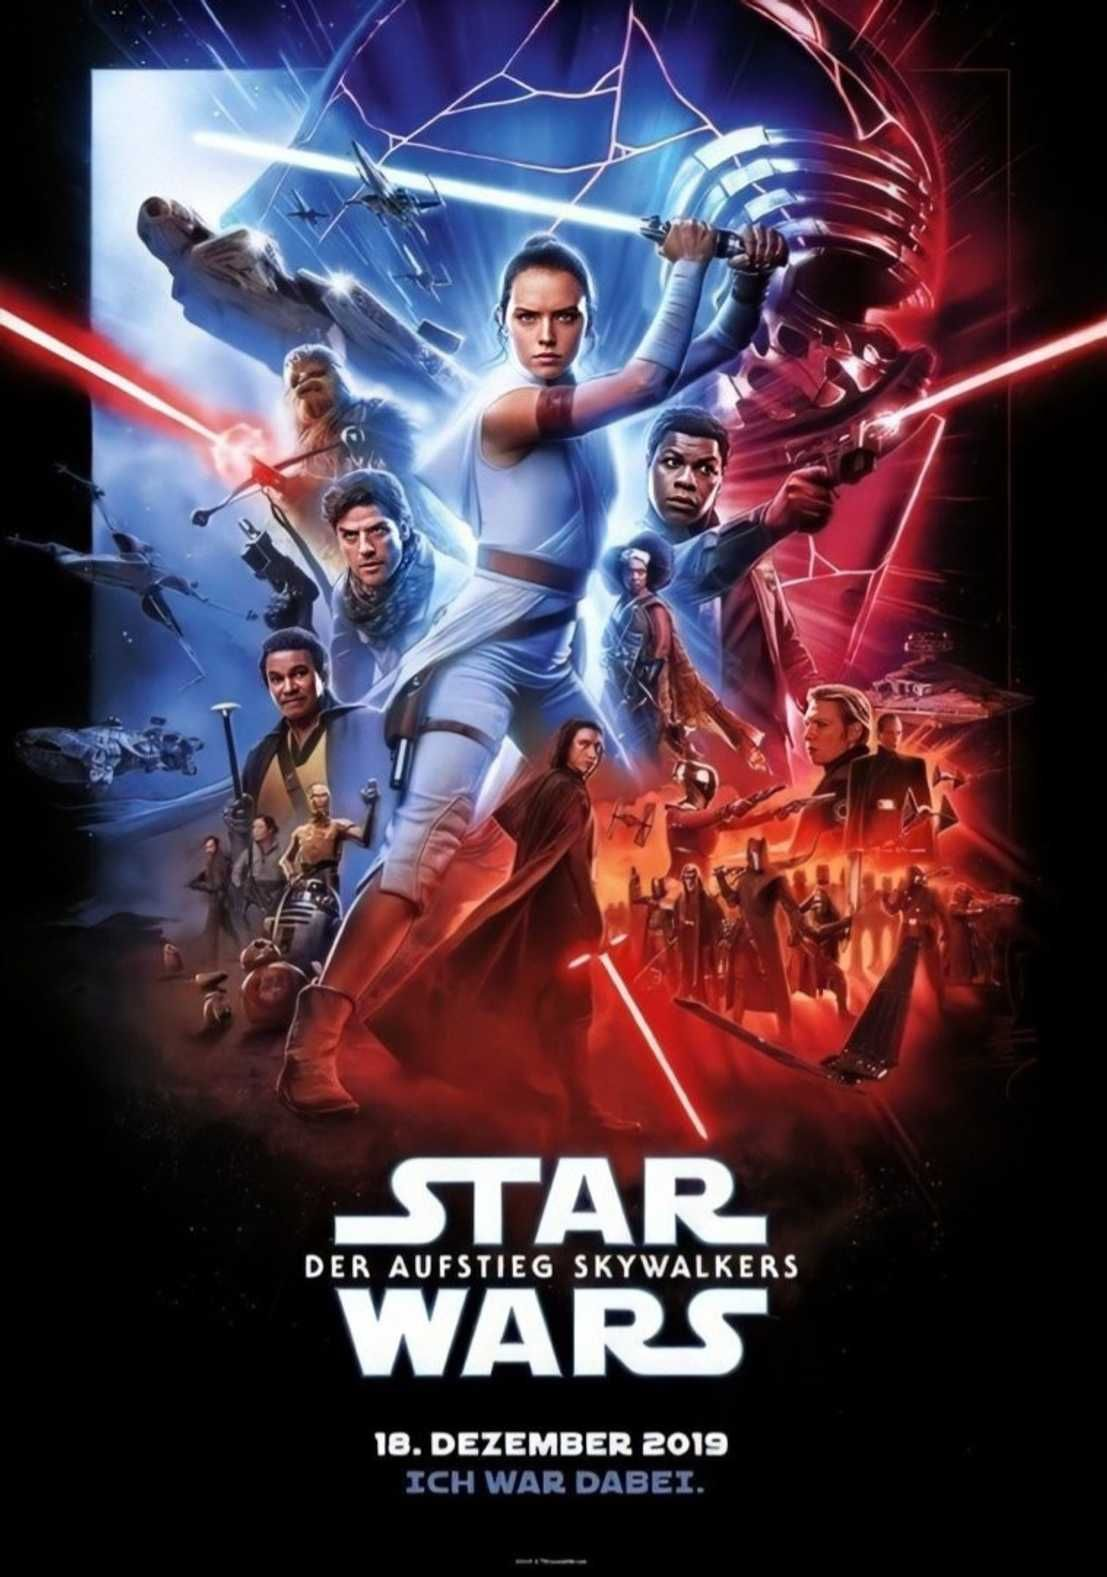 Star Wars The Rise Of Skywalker International Poster Confirms The Return Of Porgs Ign Star Wars Geschenke Star Wars Episoden Star Wars